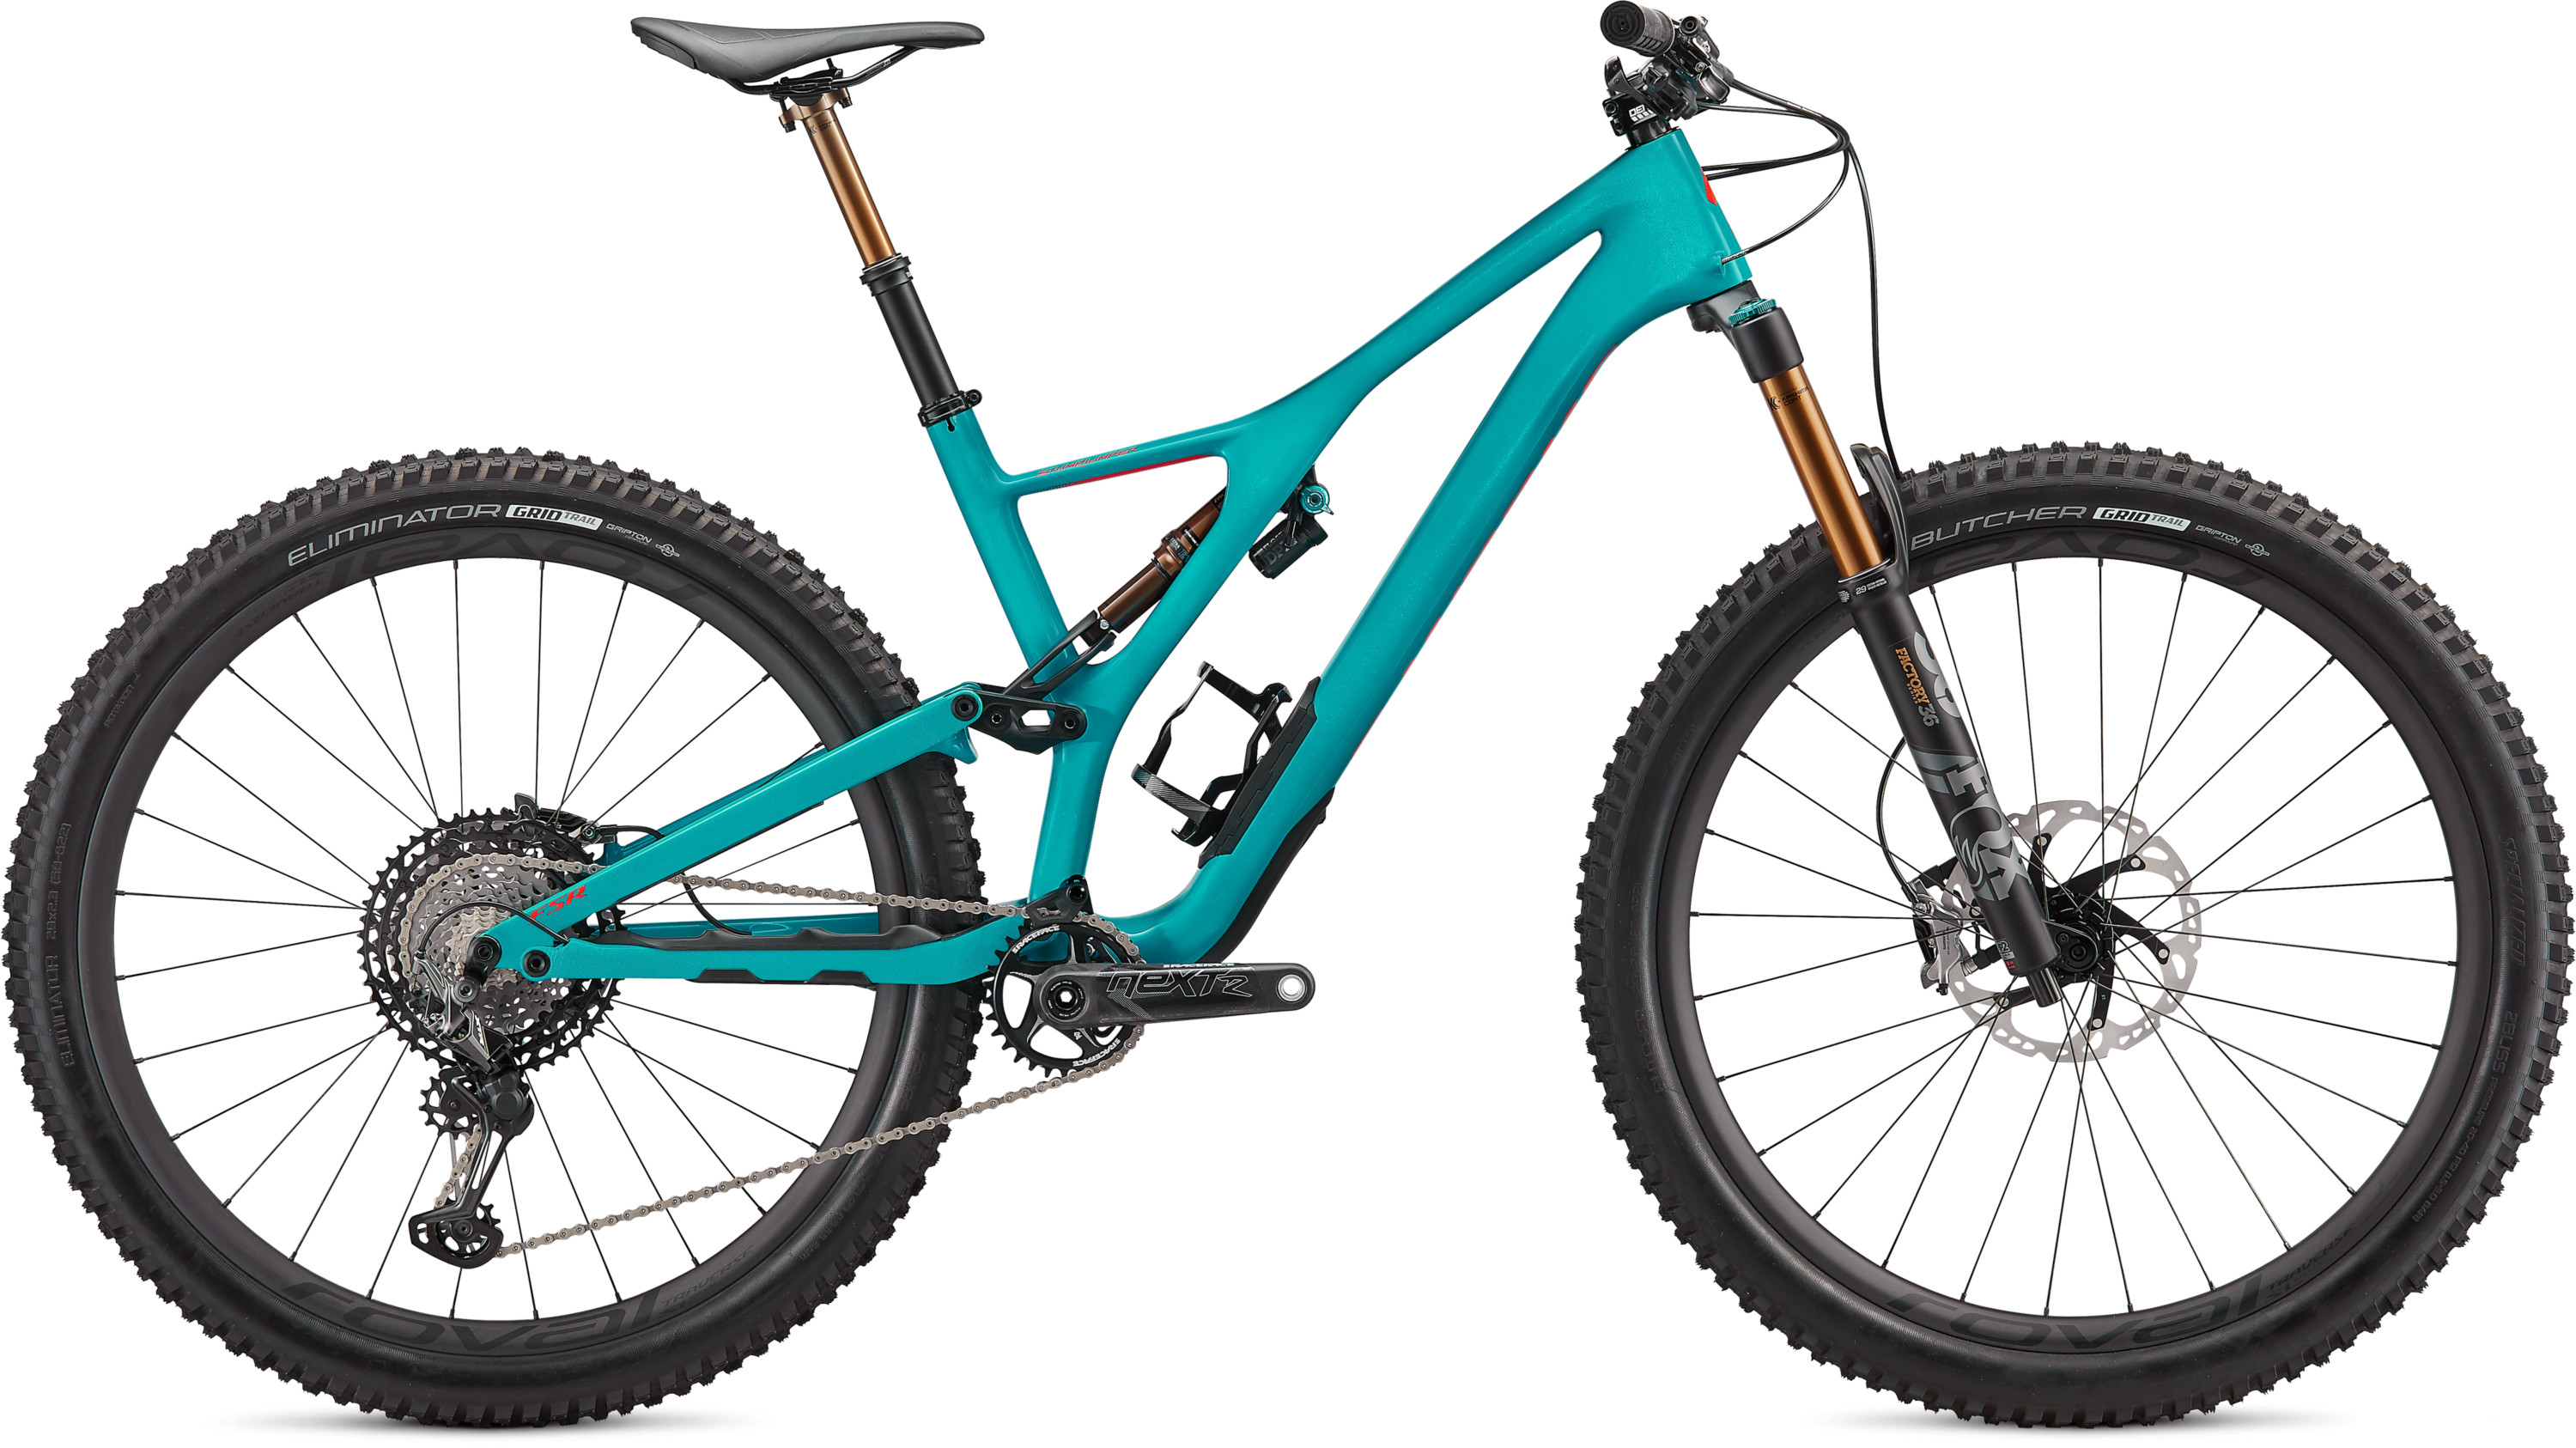 Stumpjumper Sw Carbon 29